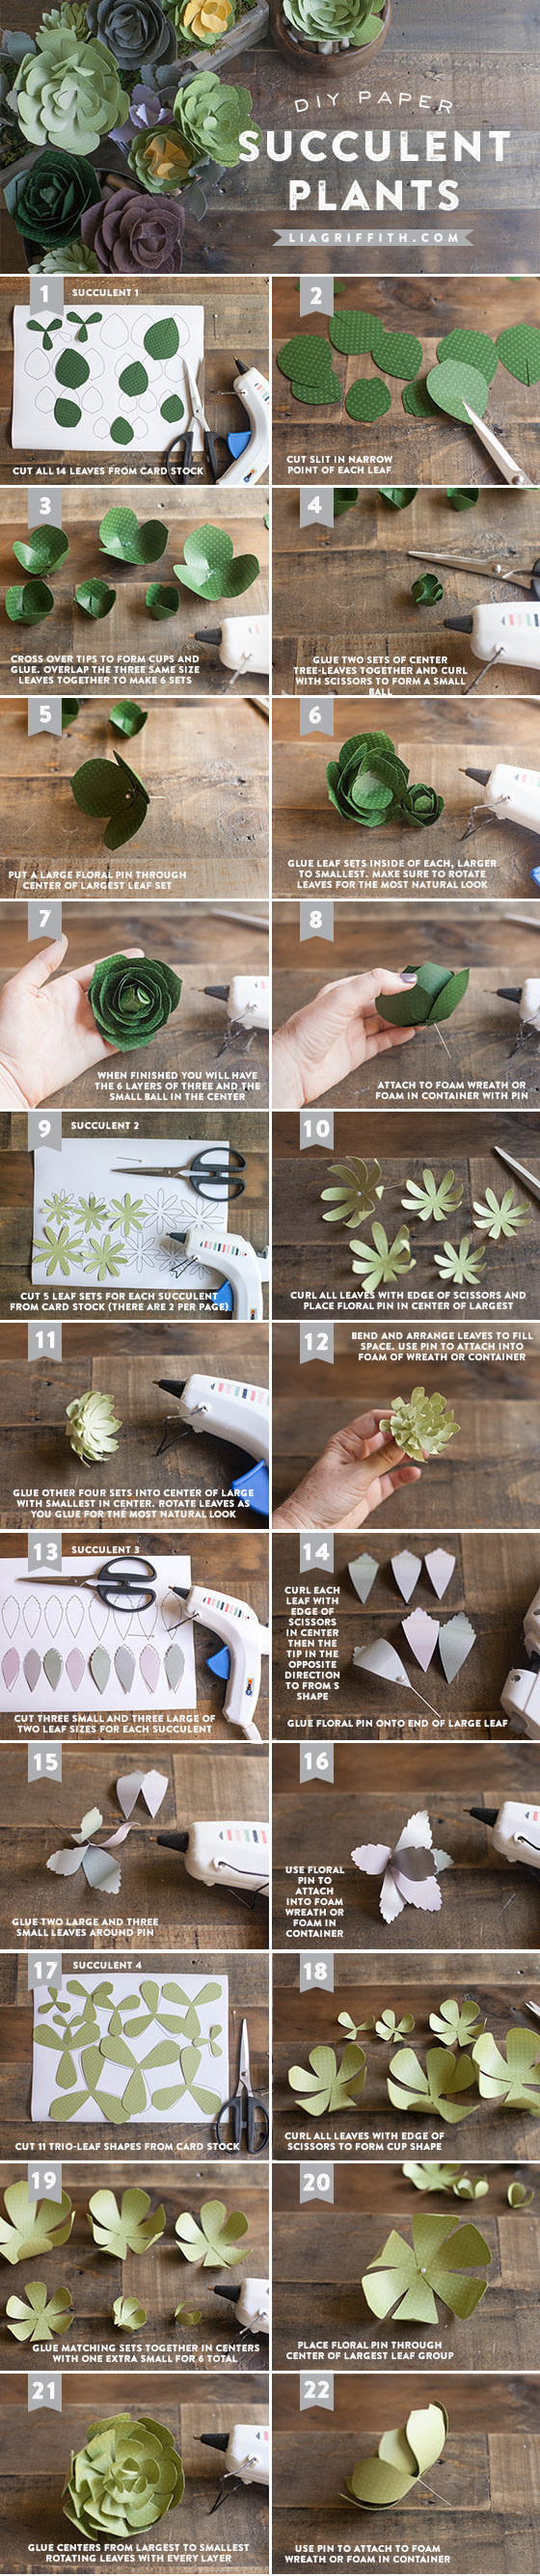 Make fake succulents out of paper to help you achieve the look without having to actually take care of the plants.